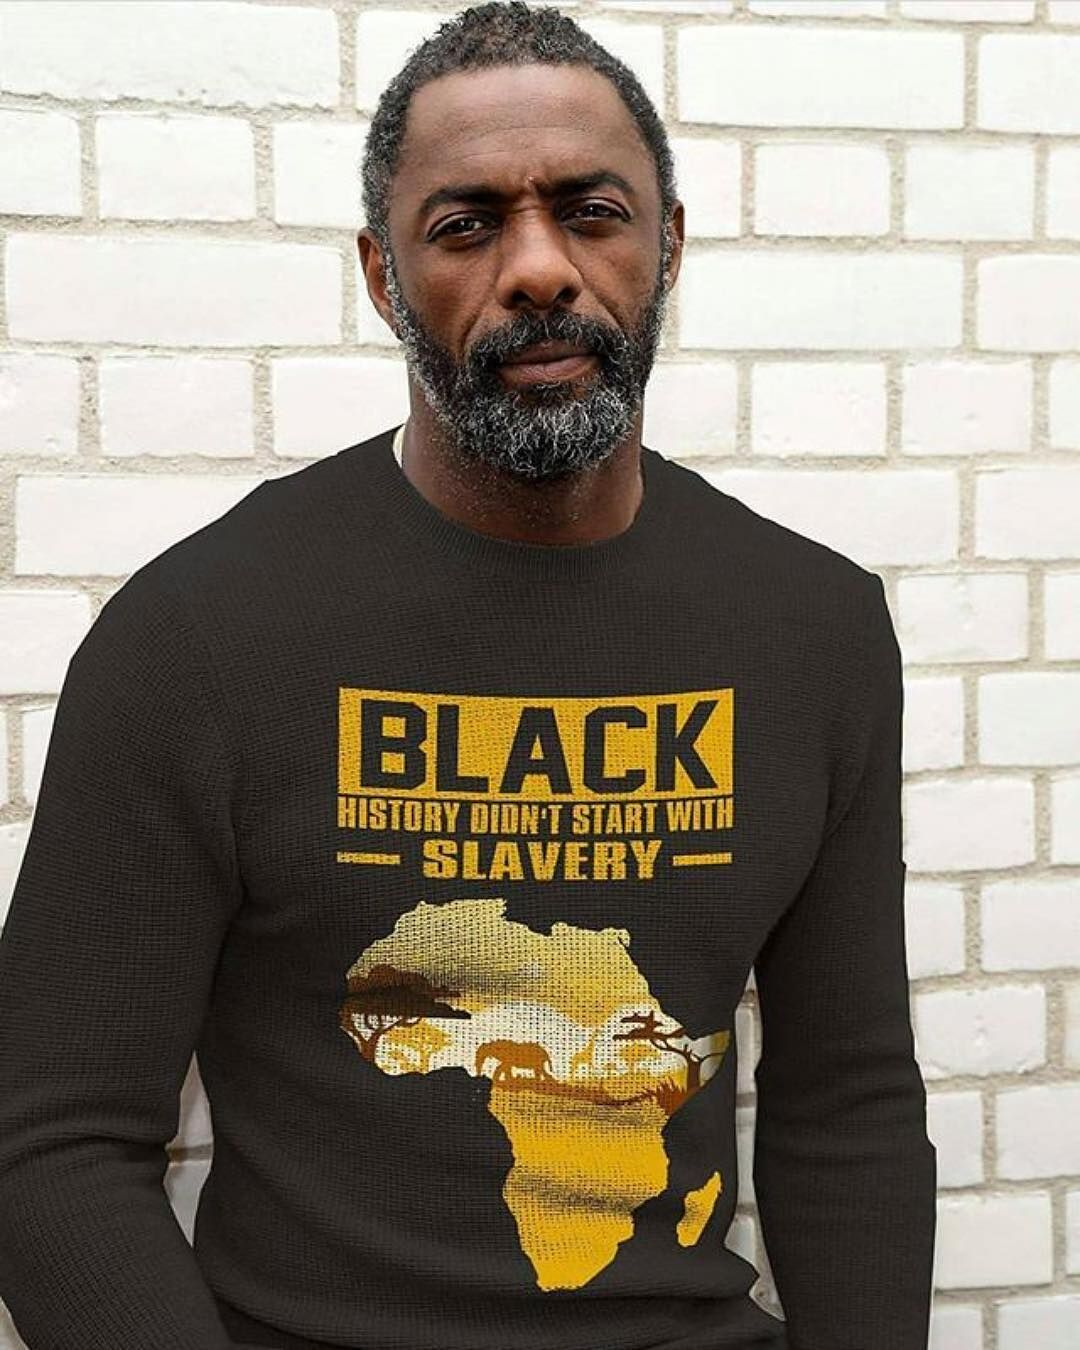 """b8a40e977 WeBuyBlack.com on Instagram: """"It's the weather to show out! But make sure  you are spending money with your people. No reason why you should buy a  shirt like ..."""